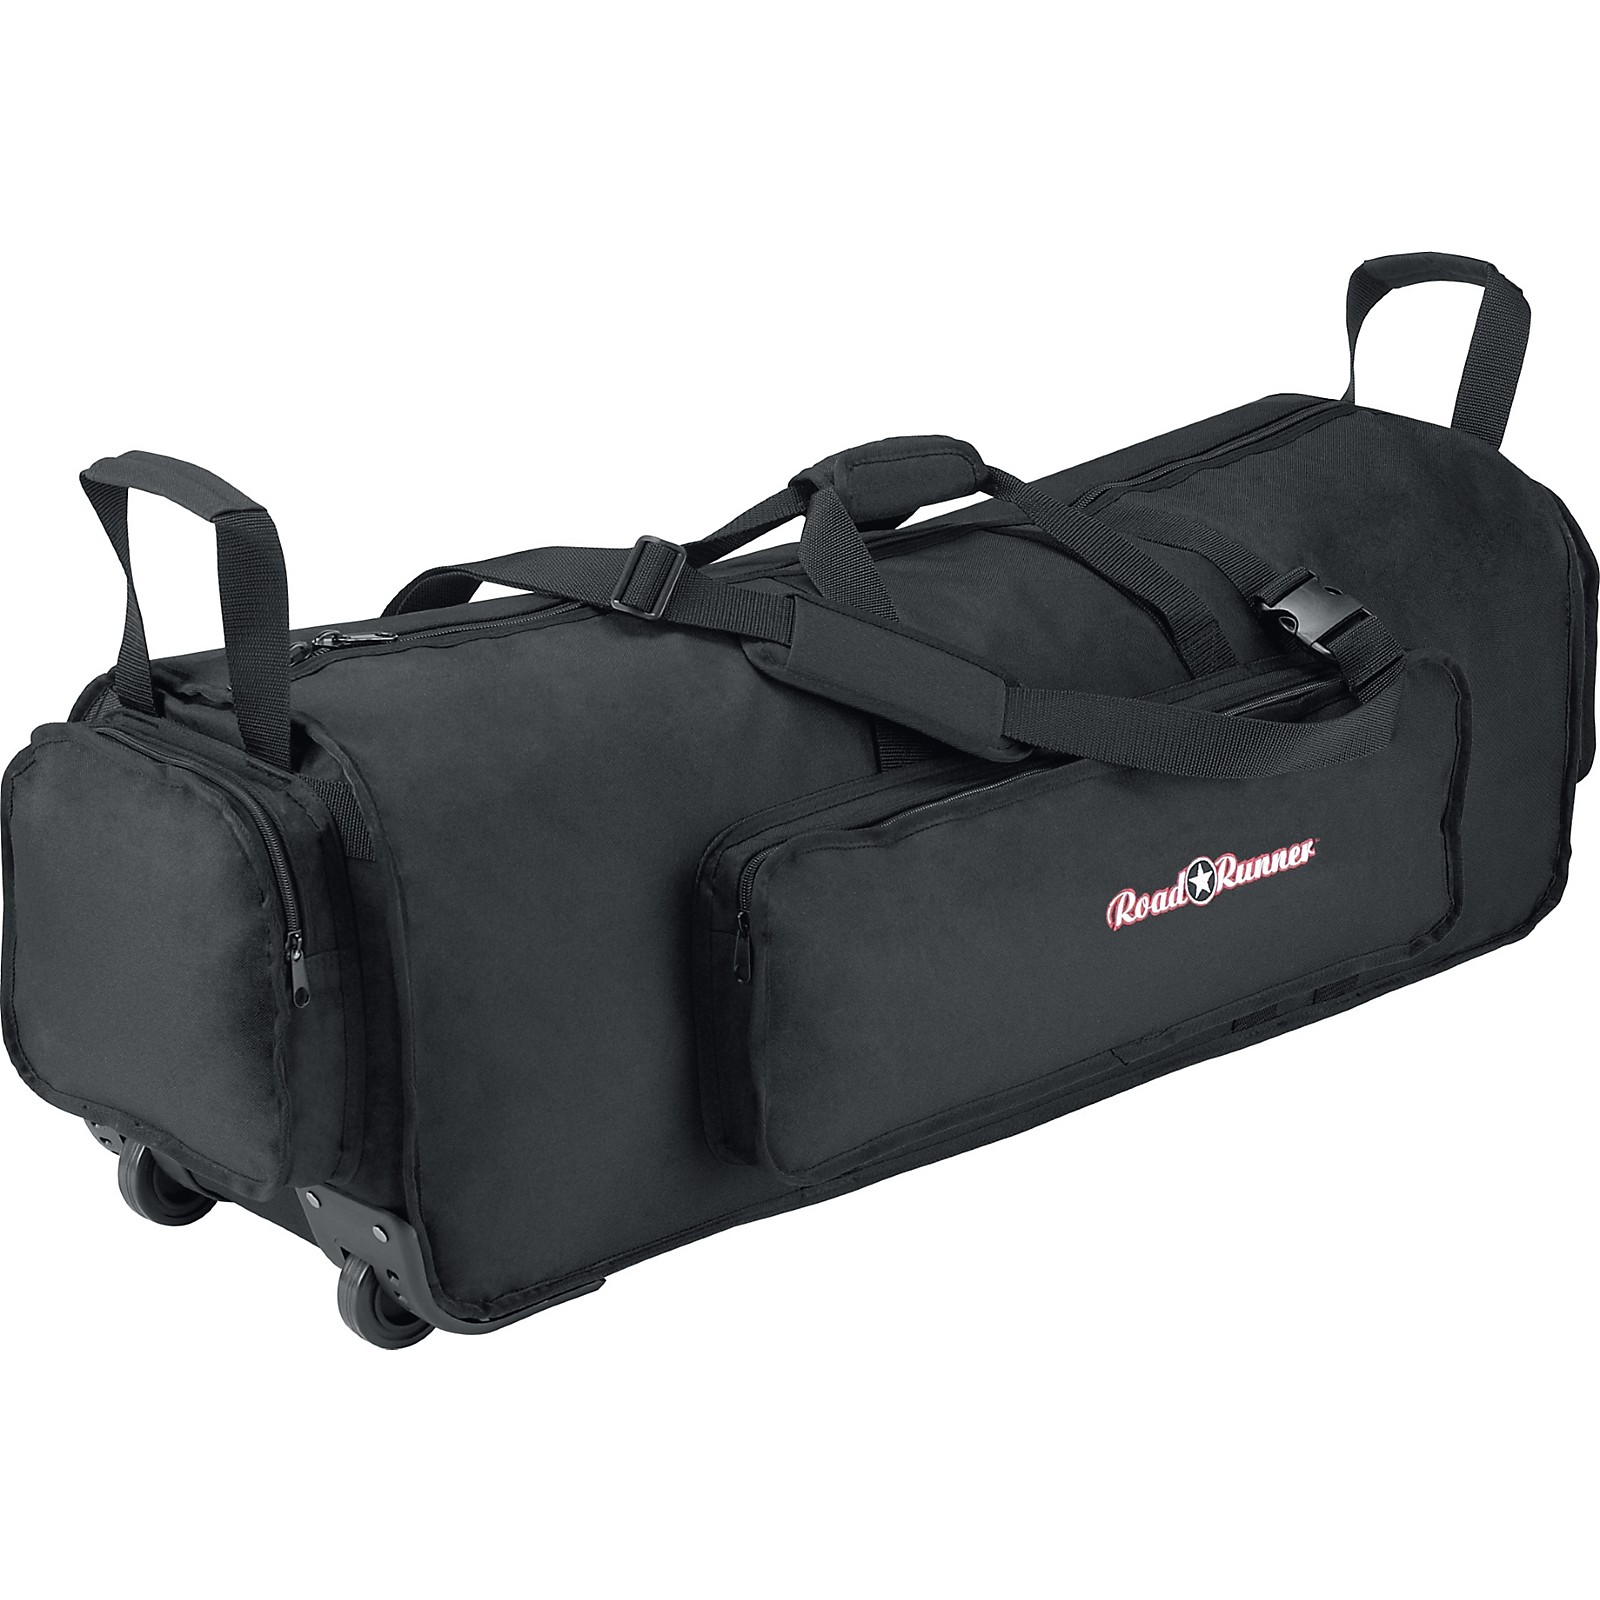 Road Runner Rolling Hardware Bag 38 inches